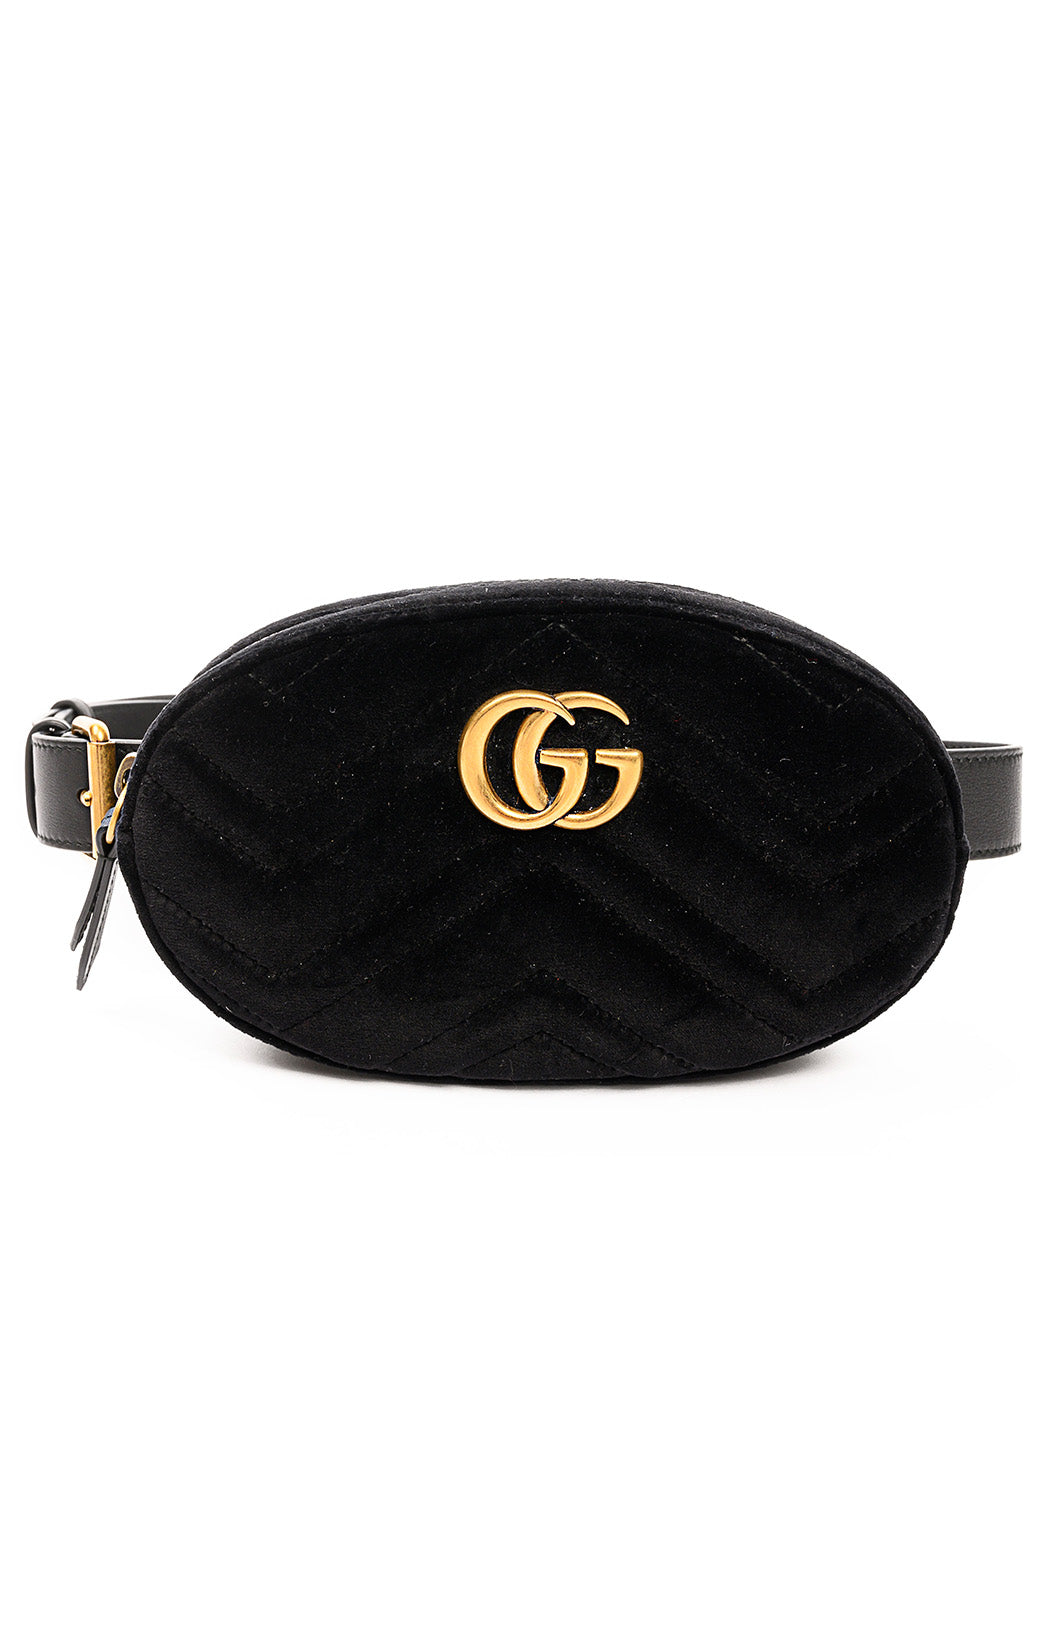 "Front view of GUCCI Fanny pack Size: 7.5"" W x 4.5"" H x 2"" D"